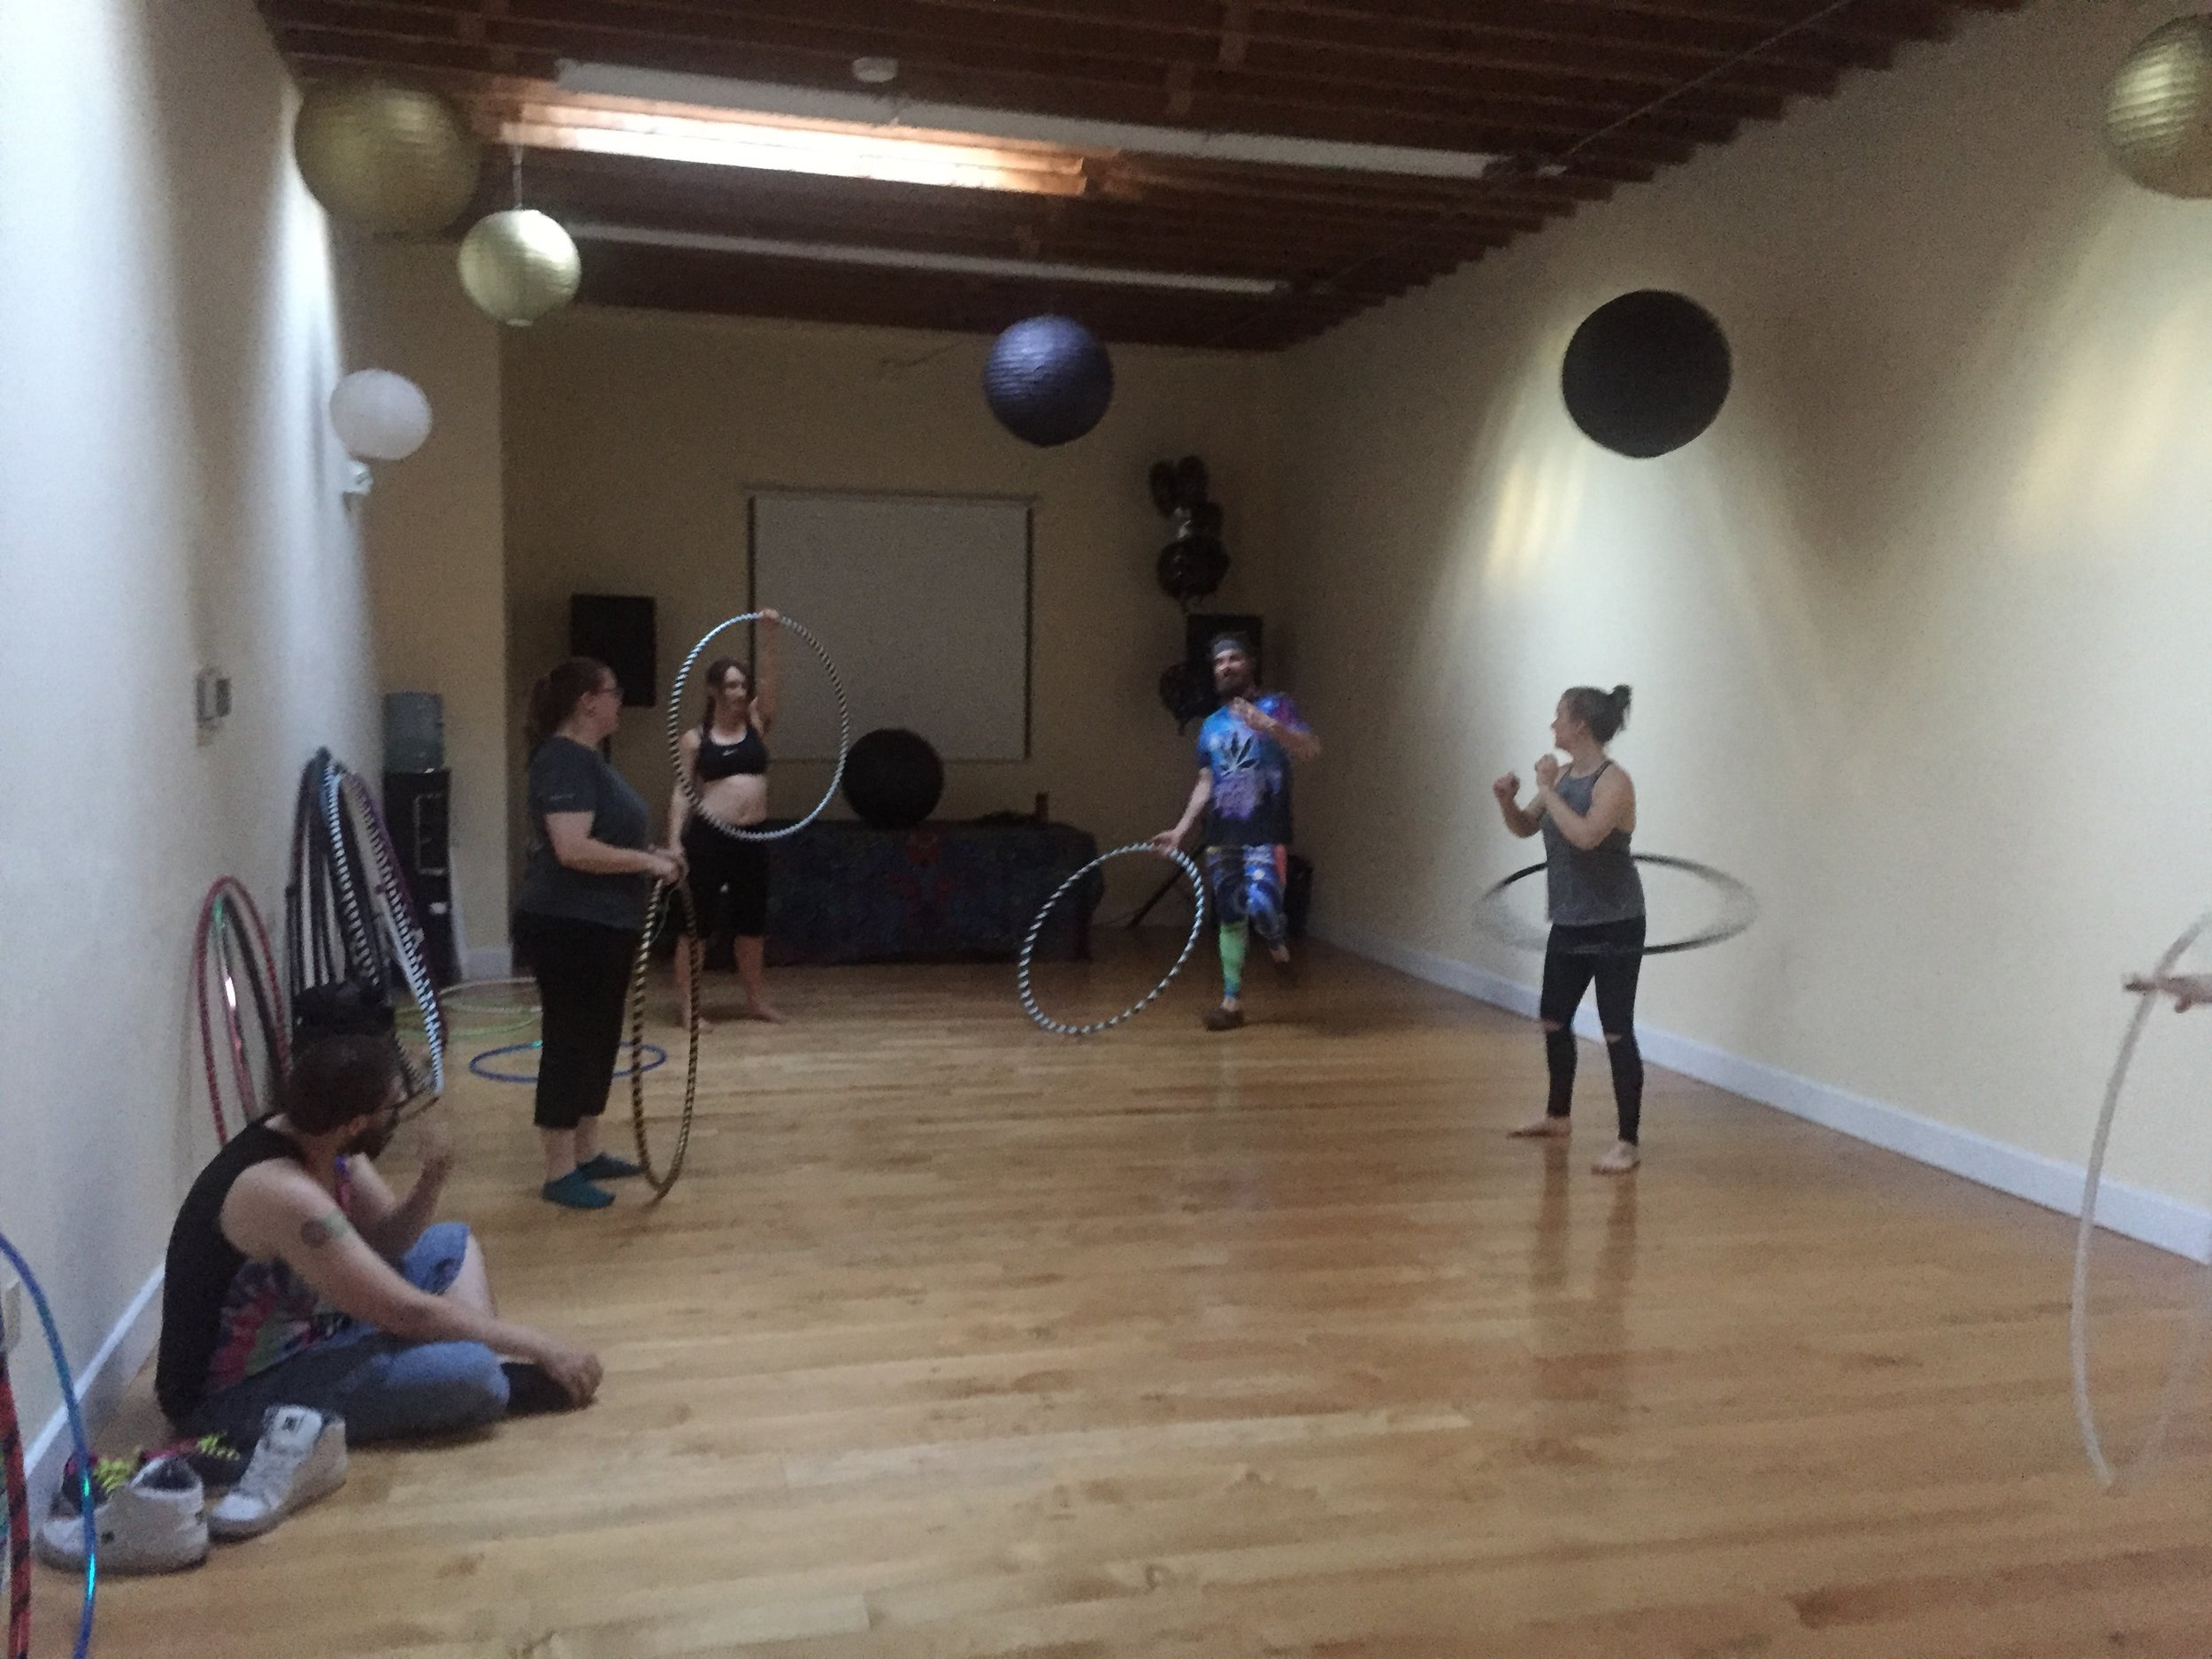 The Center For Mindful Use is a Beautiful Space for Hoop Dancing!